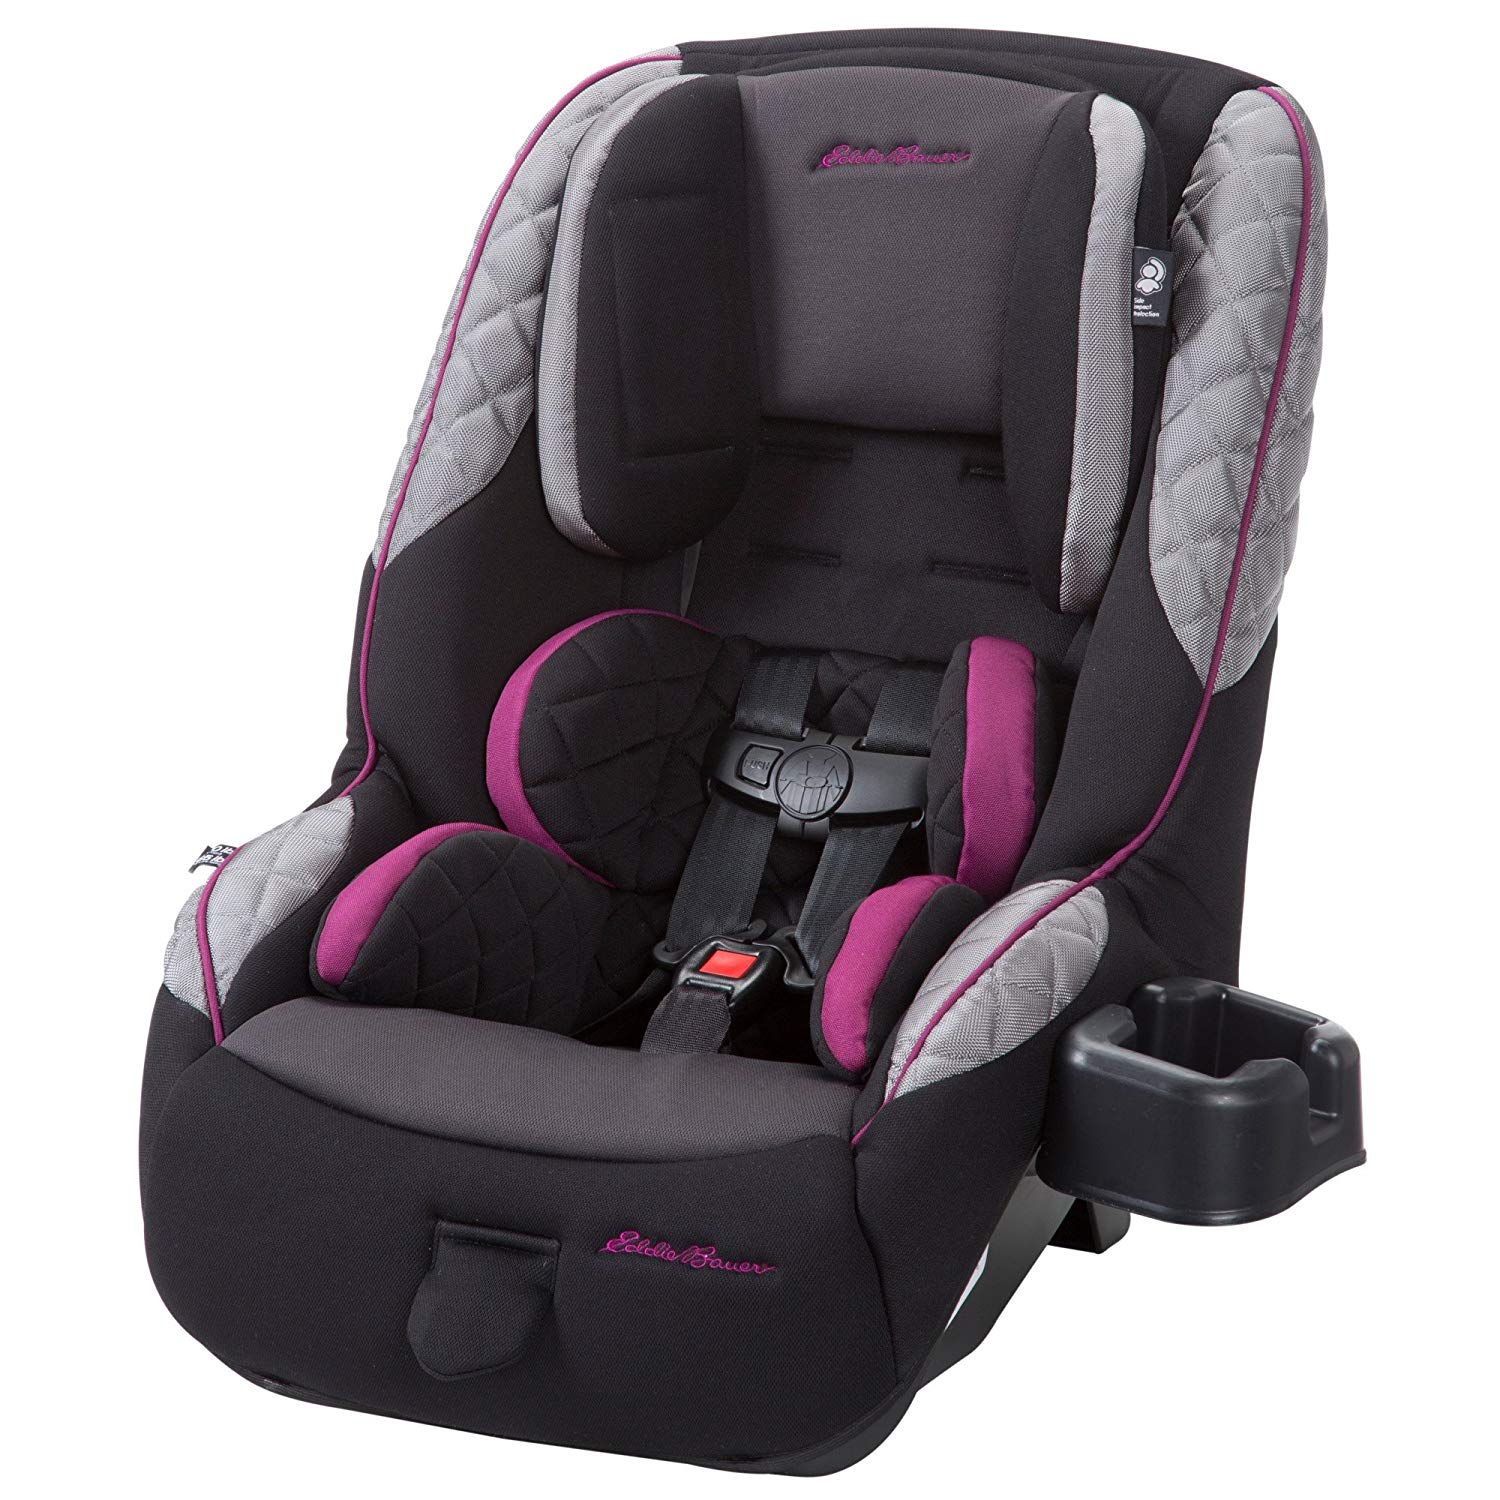 In The Rear Facing Position Eddie Bauer XRS 65 Is Suitable For A Child Between 5 40 Lbs With Maximum Height Of About Inches